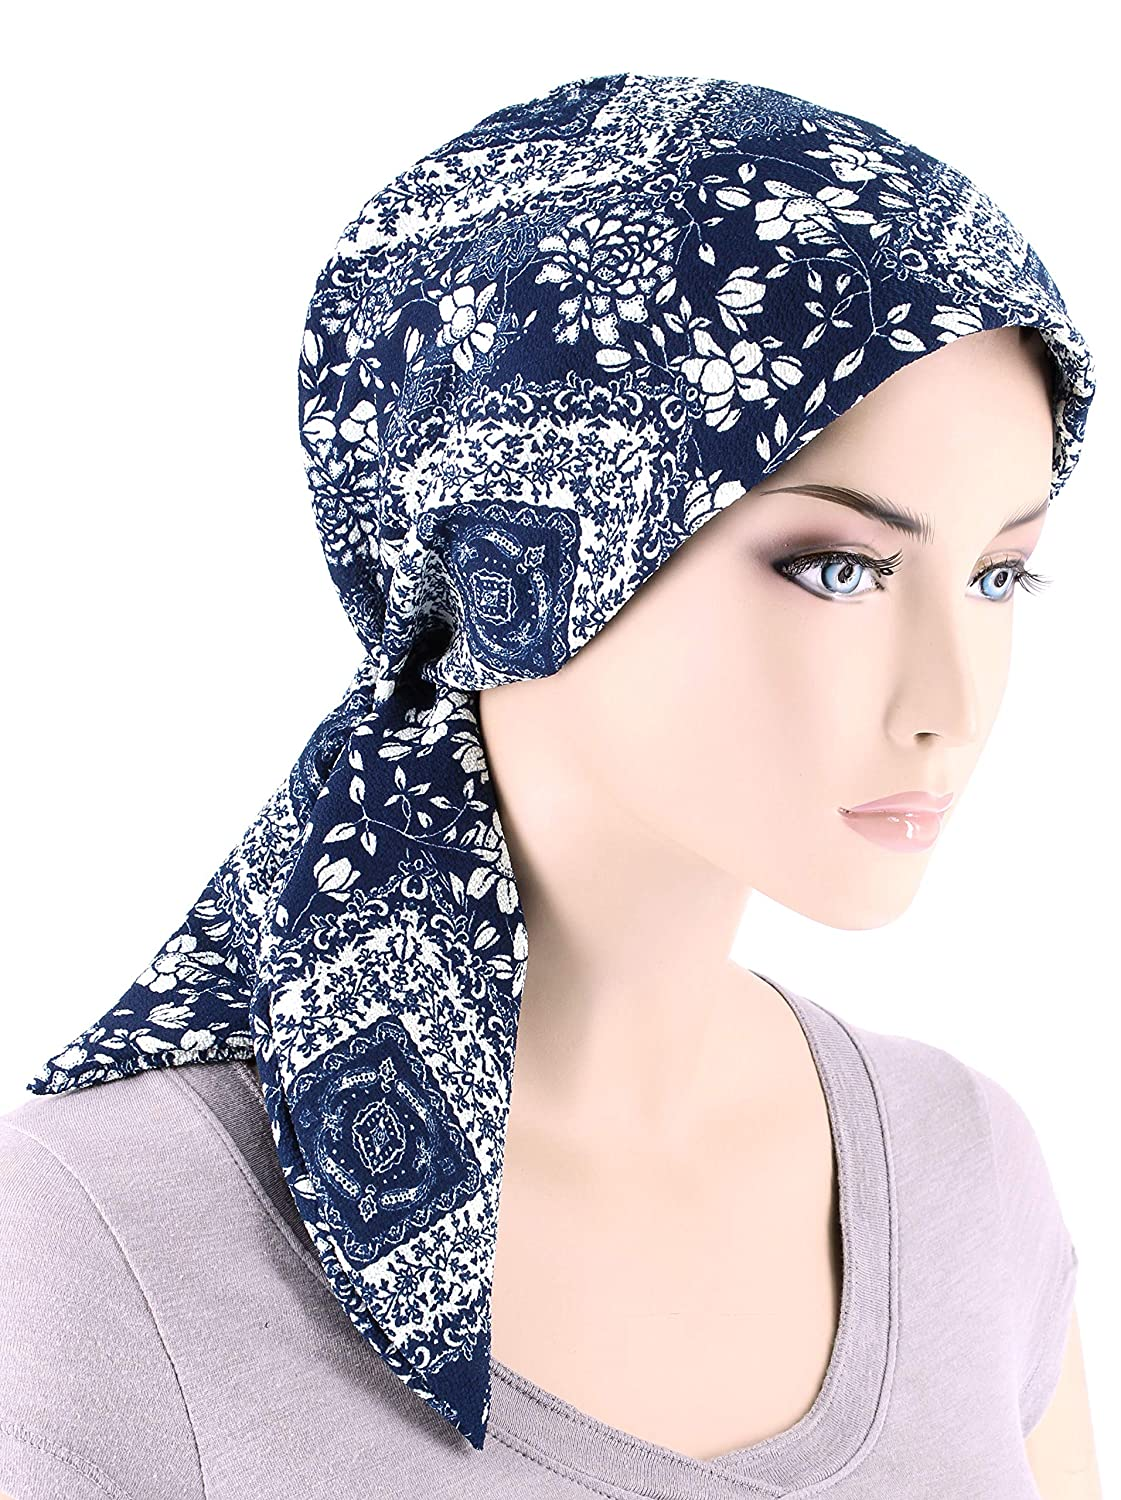 a29bb2b63db Chemo Fashion Scarf Easy Tie Turban Hat Headwear for Cancer Navy Blue White  Floral at Amazon Women s Clothing store